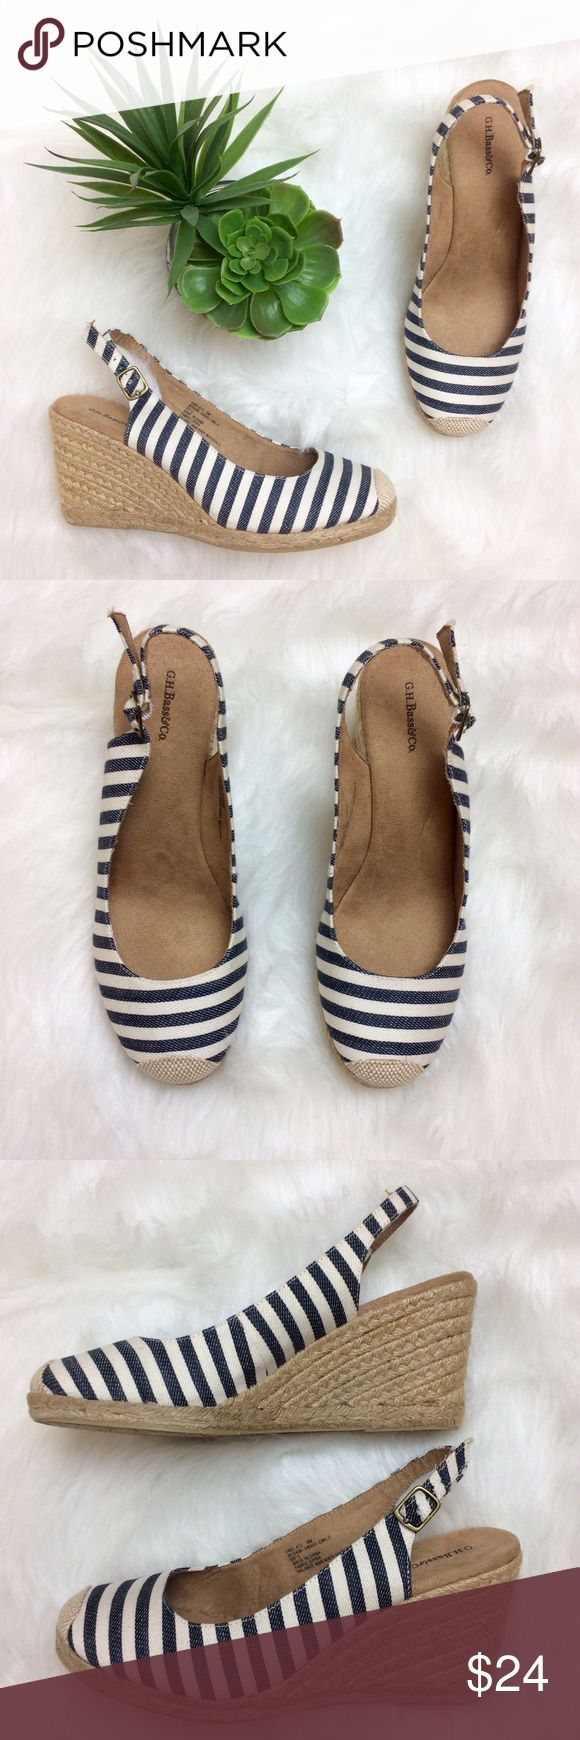 """Bass Navy and White Striped Wedges Beautiful Navy and white striped Wedges from G.H. Bass & Co. Size 9M. Wedge is 3.5"""". Bass Shoes Wedges"""